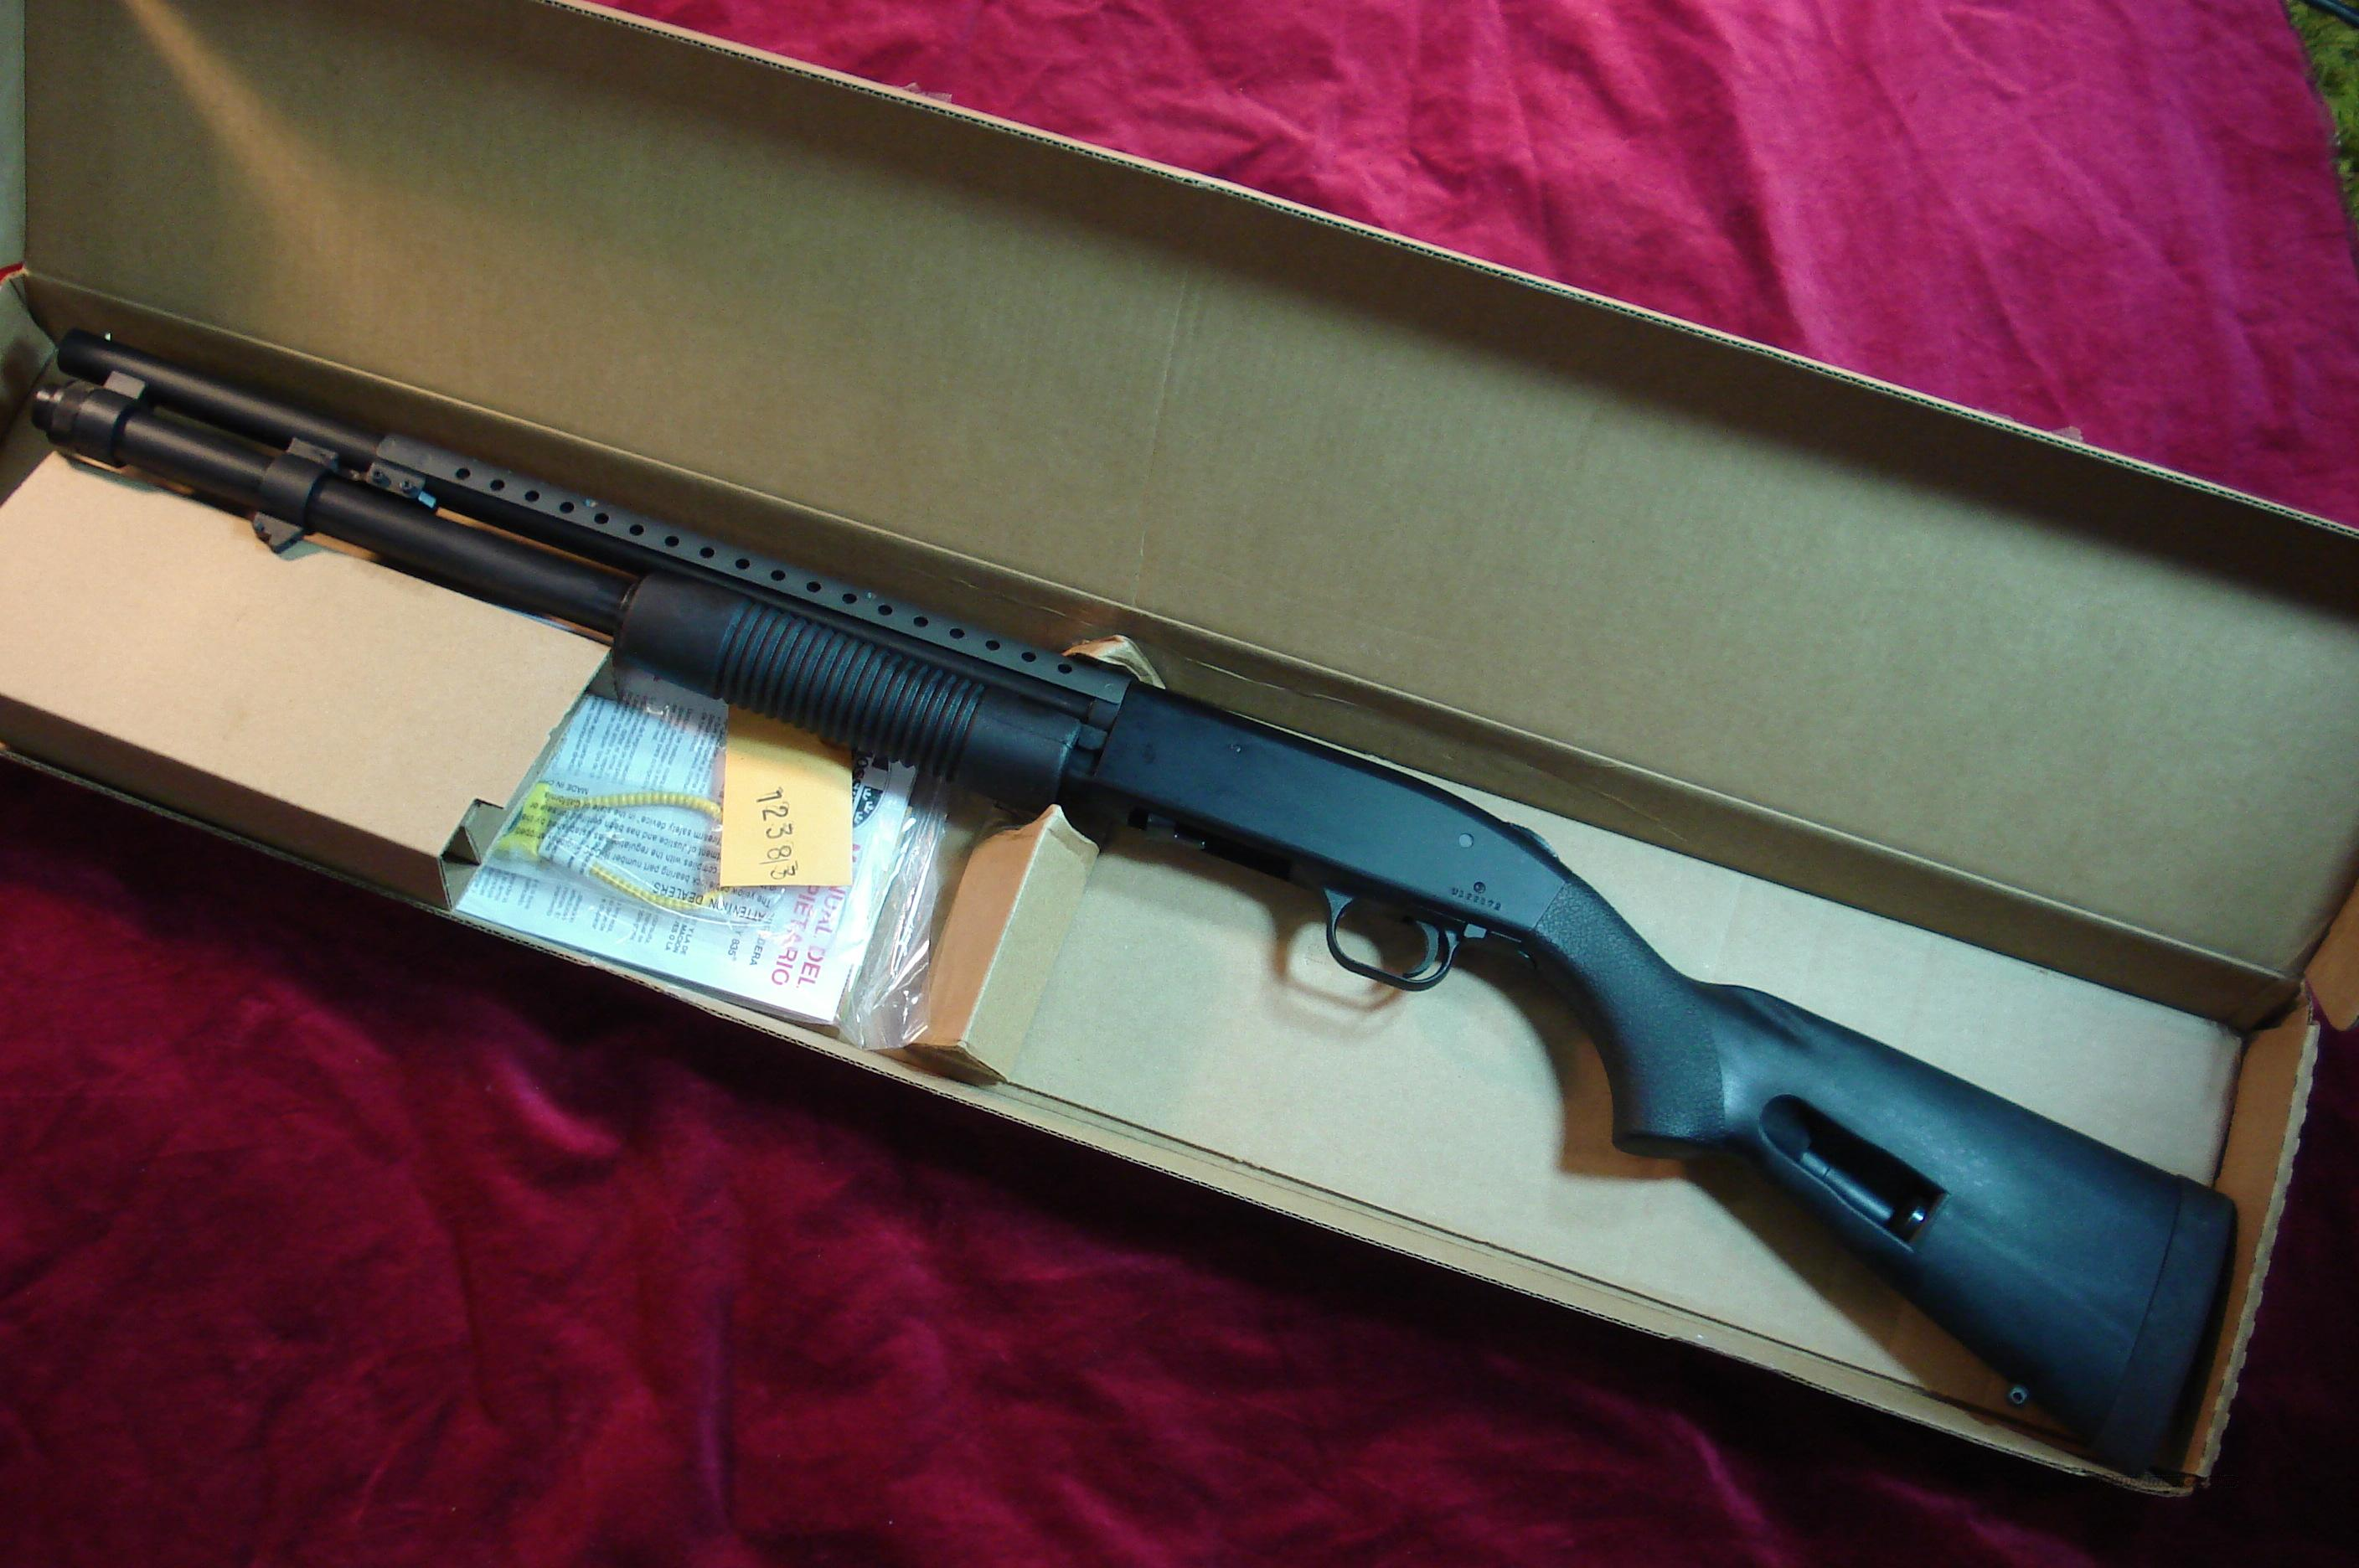 MOSSBERG 590 PERSUADER 12G W SPEED FEED STOCKH For Sale